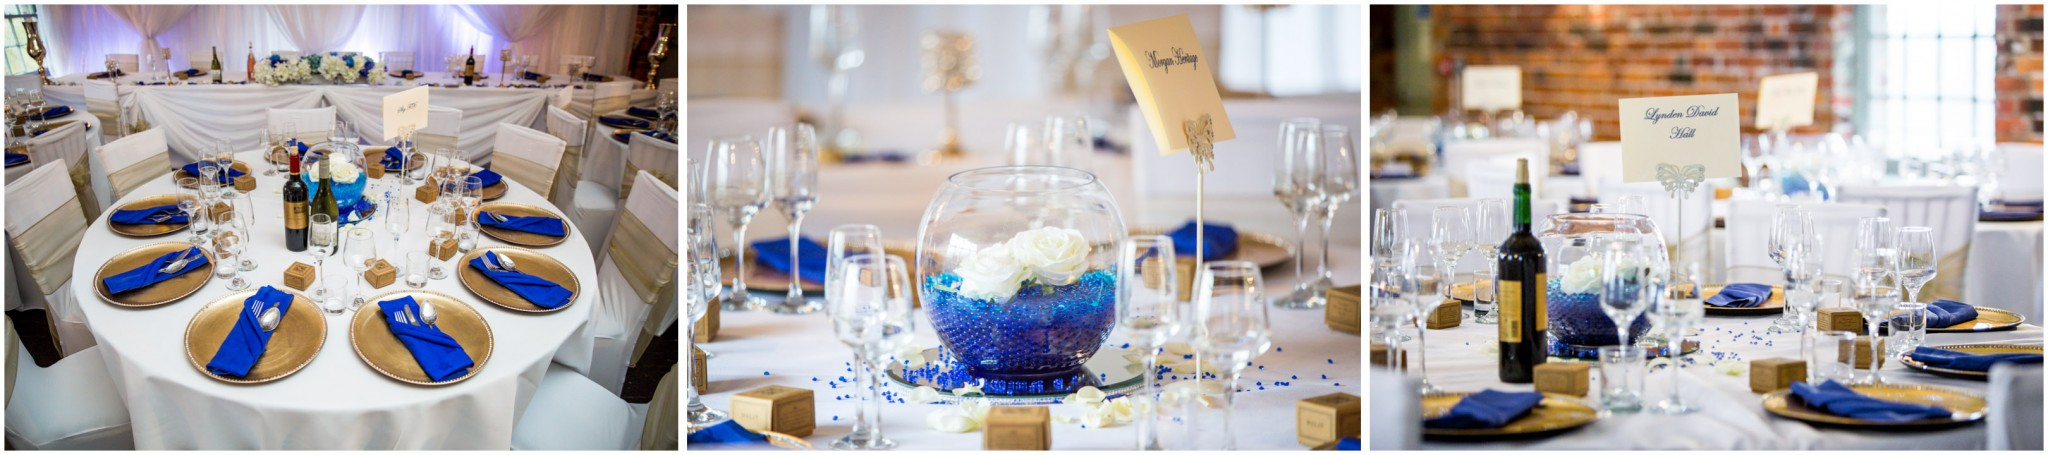 Sopley Mill Wedding Reception Table Decorations